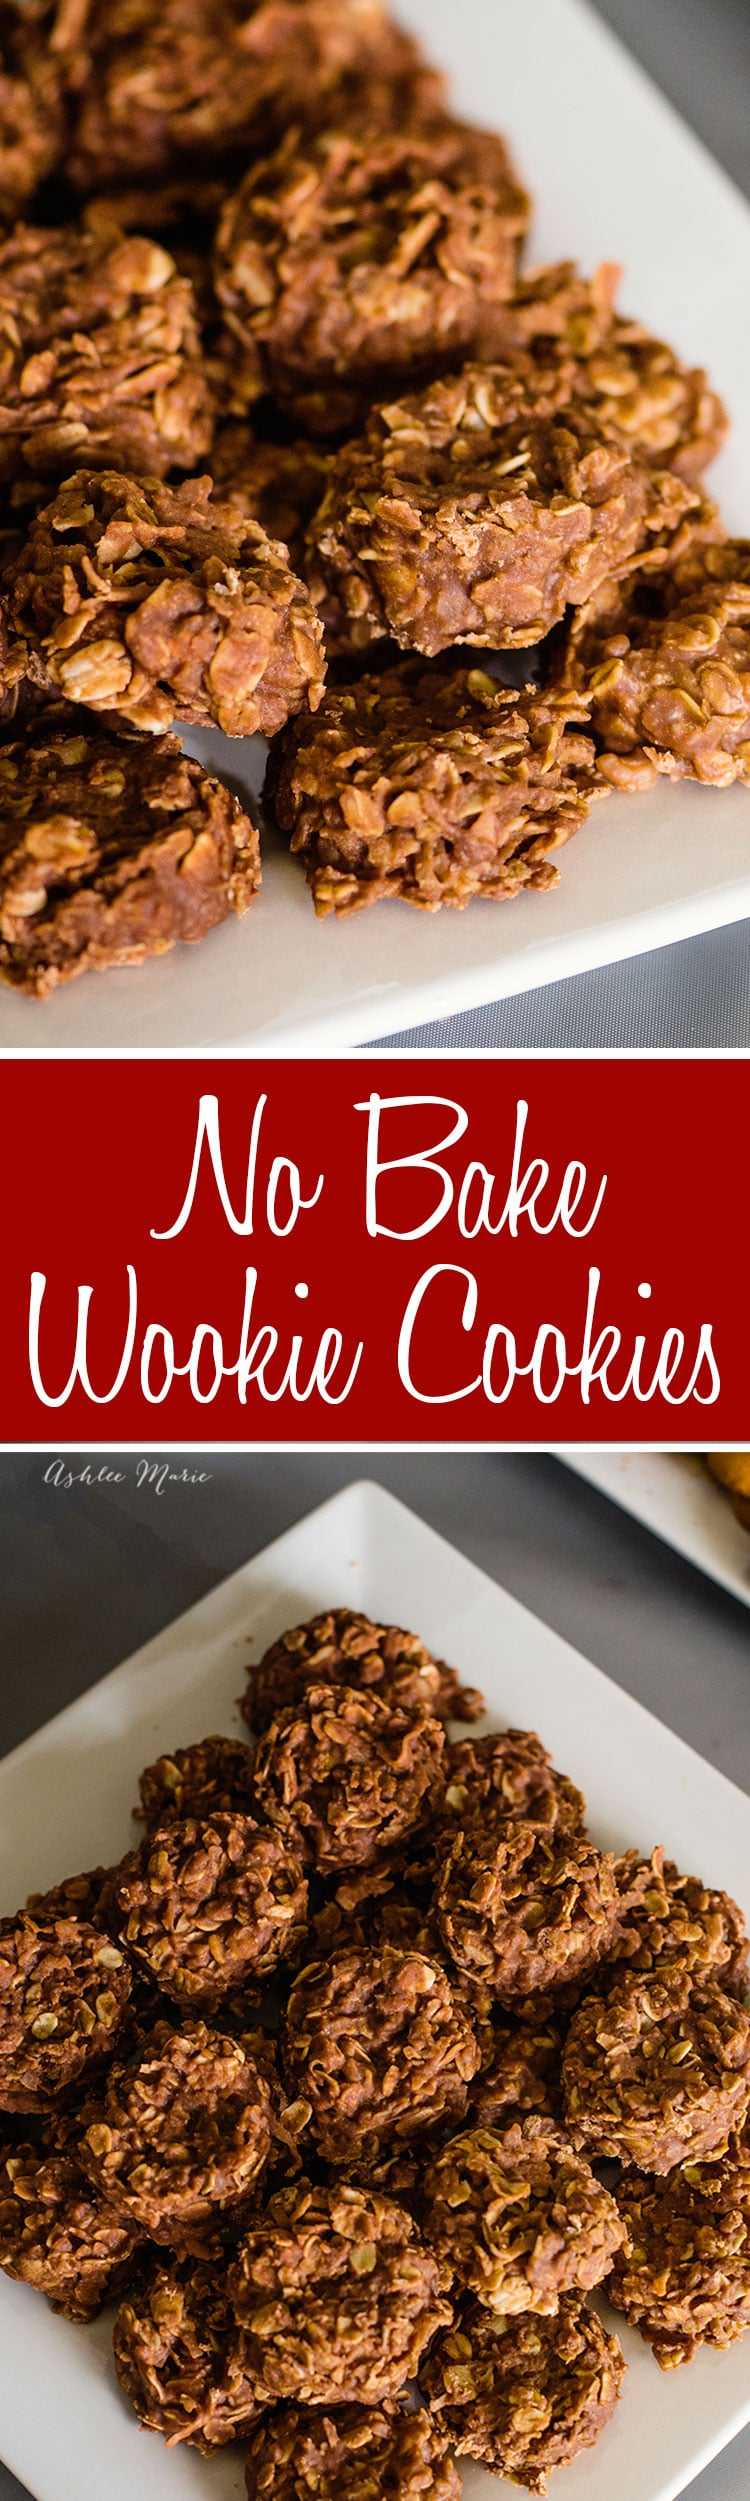 these chocolate peanut butter no bake cookies are perfect to represent wookies for your star wars party